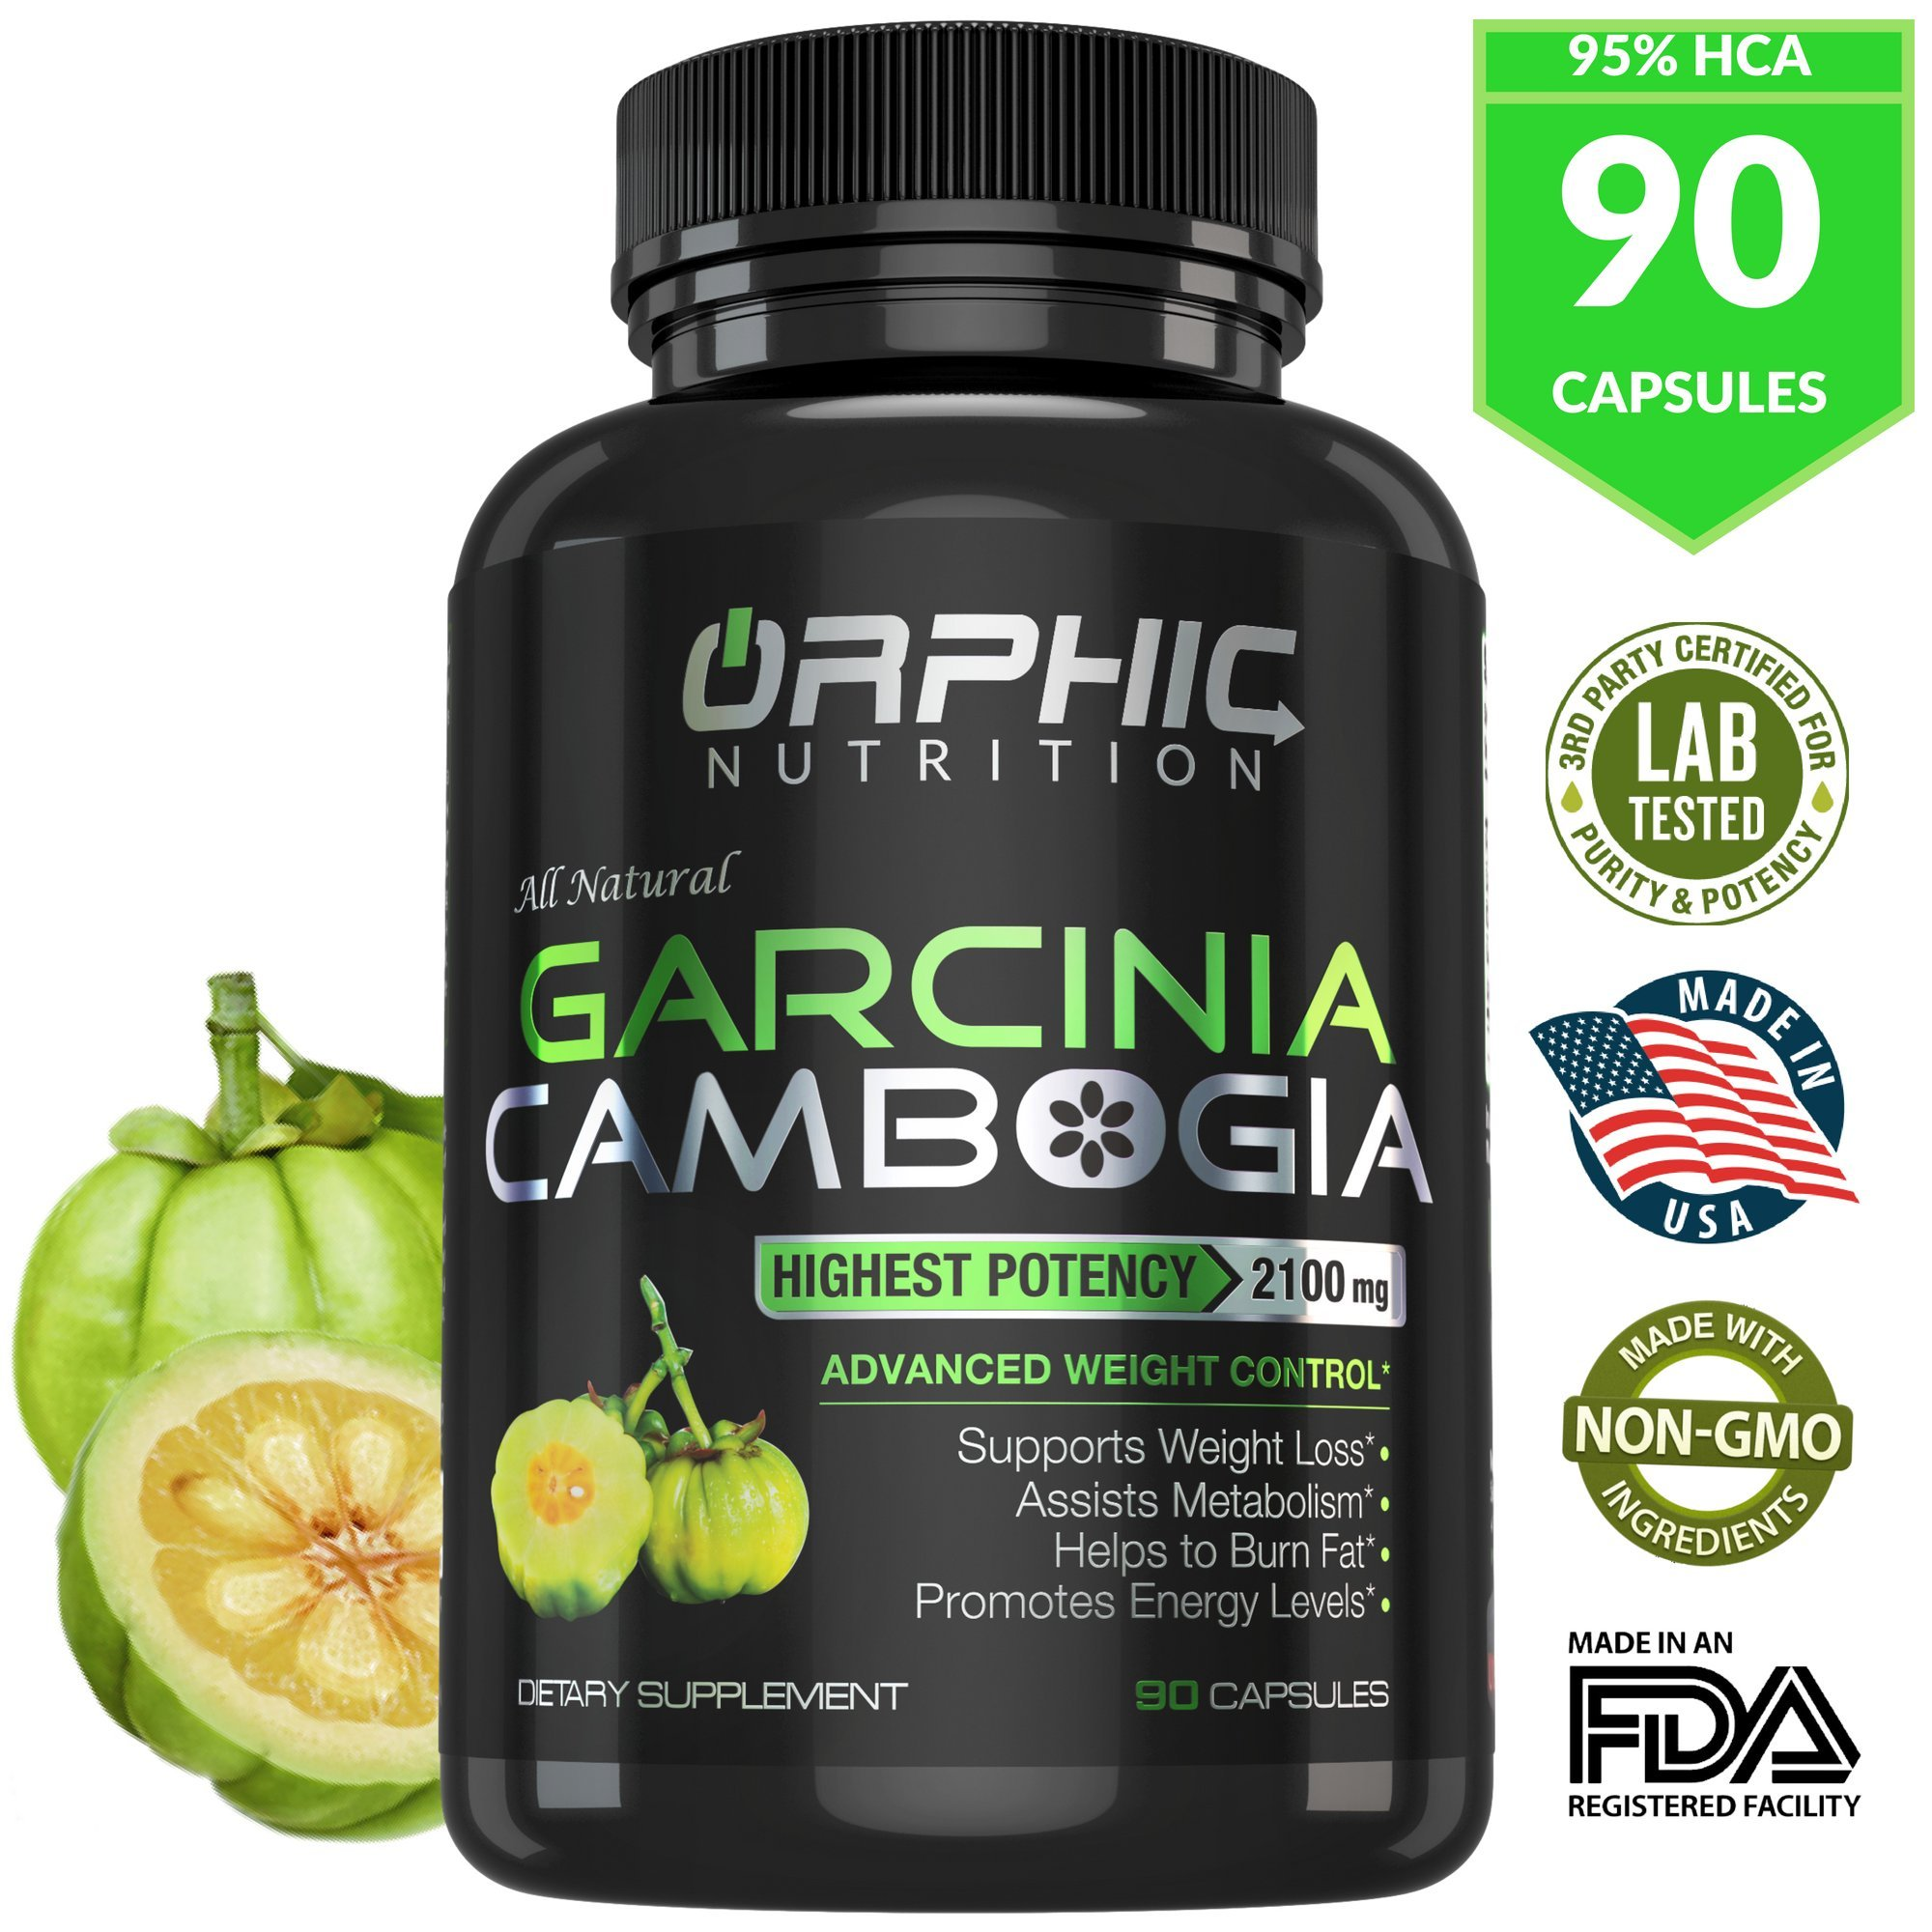 ORPHIC Nutrition 100% Pure Cambogia Extract 95% HCA, 2100 mg Capsules | 100% Natural Appetite Suppressant | Non-Stimulating | Lose Weight, Burn Fat & Boost Metabolism for Men & Women